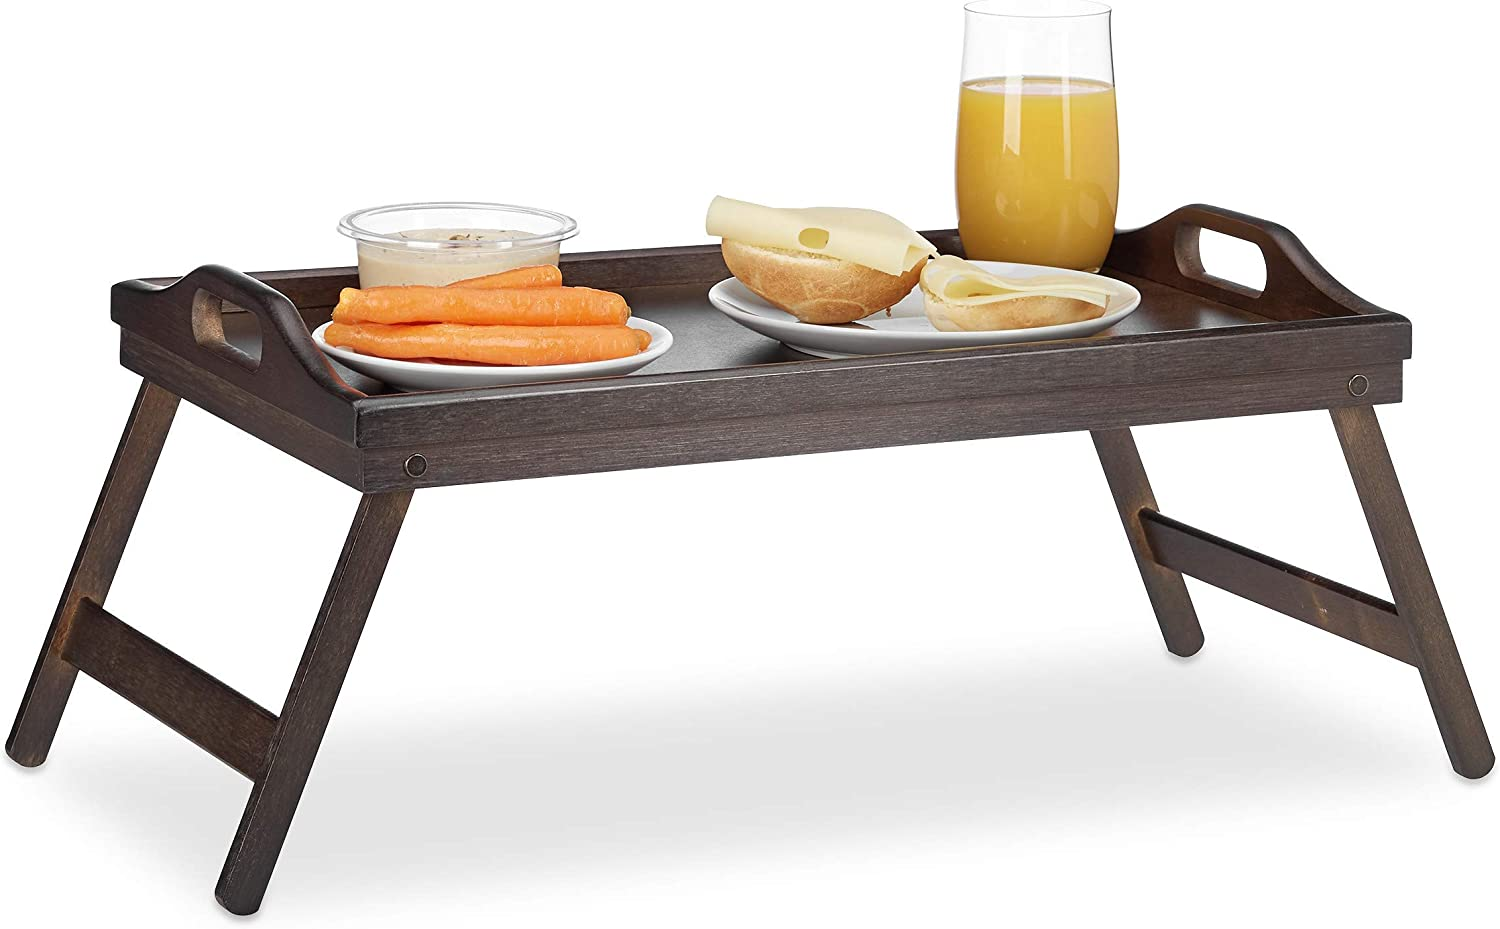 Relaxdays Bamboo Bed Tray, Folding, Handles, Raised Edge, for Breakfast in Bed and Serving, HWD: 22x61.5x30cm, Dark Brown